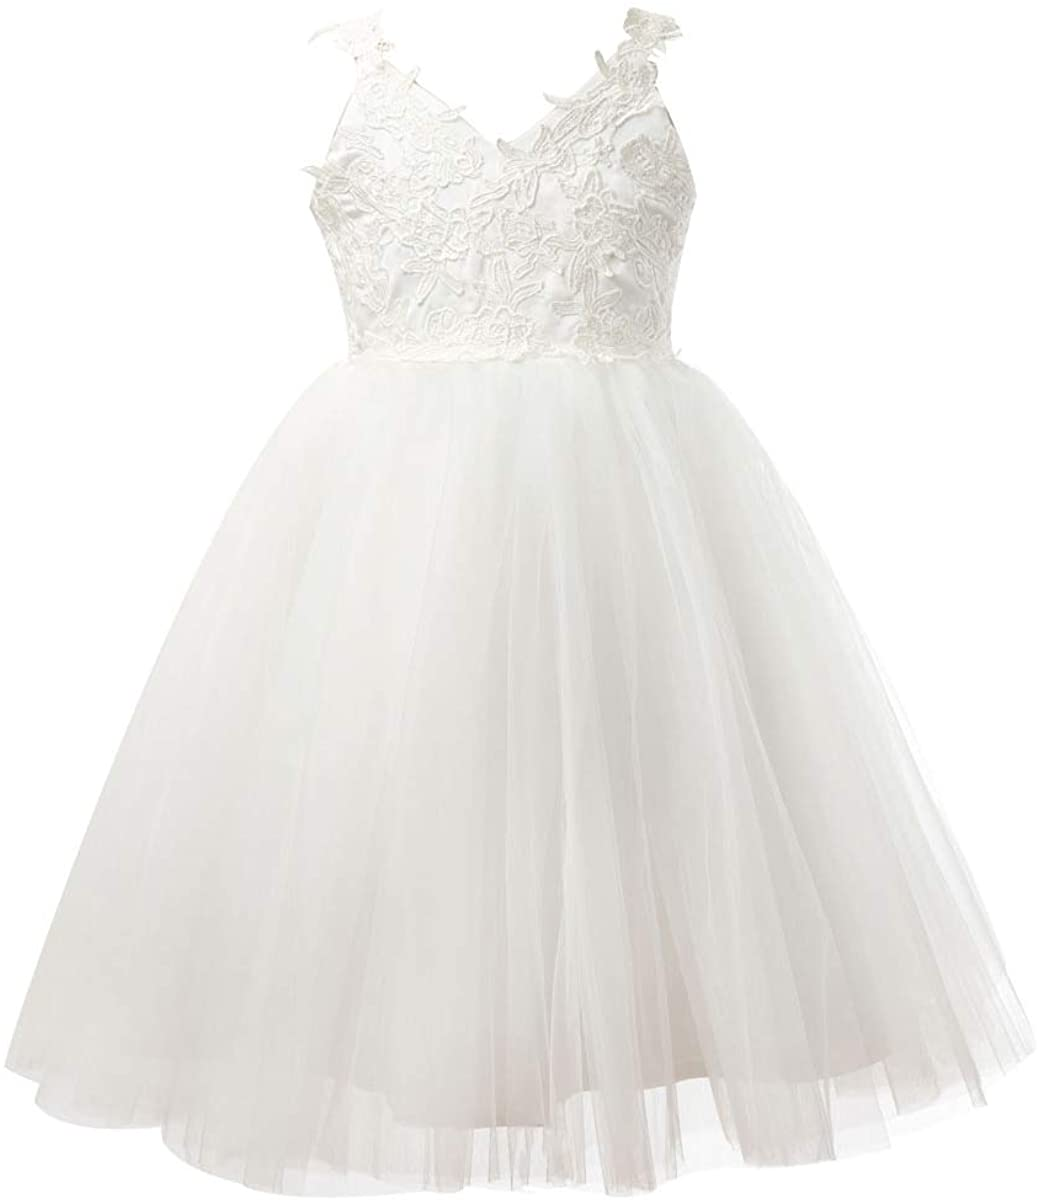 Miama Ivory Lace Tulle Backless Wedding Flower Girl Dress Junior Bridesmaid Dress